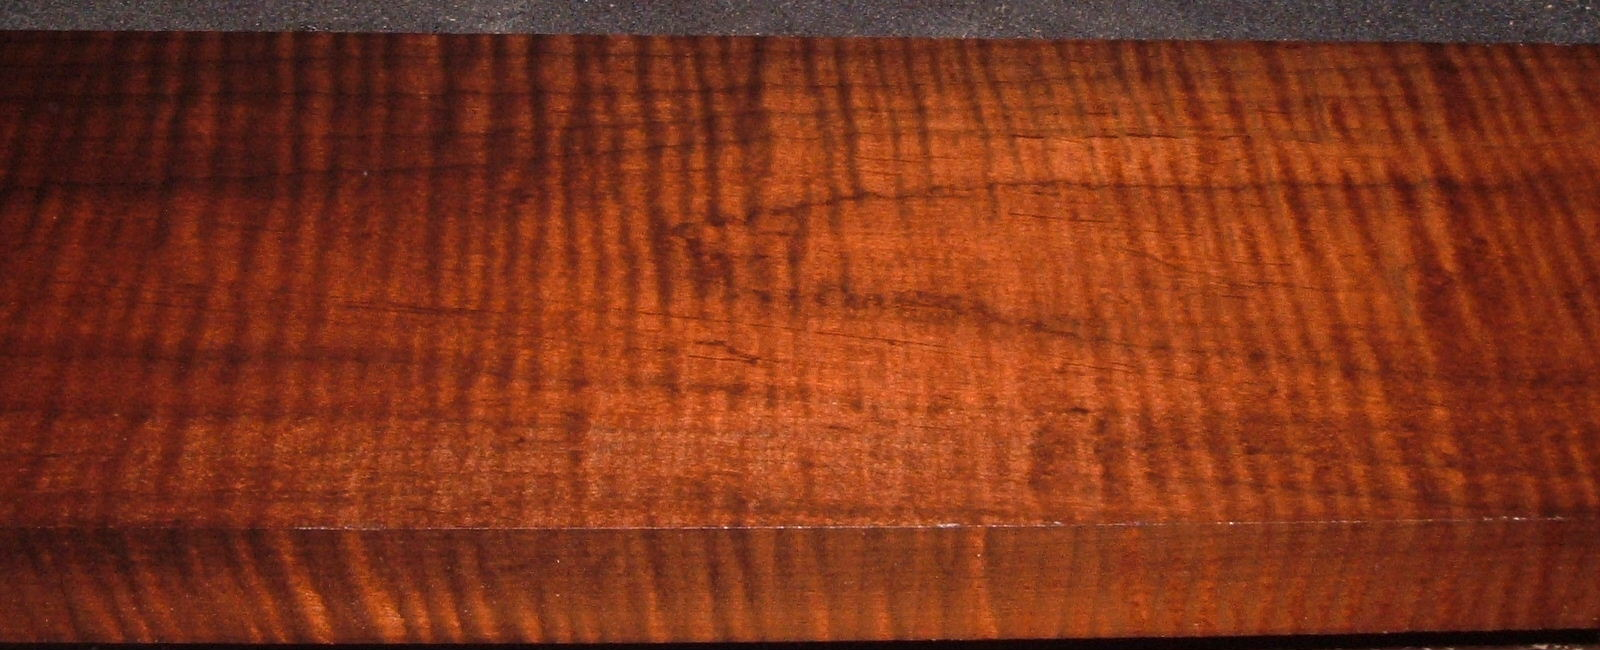 RM2104-124, 1-9/16x6x48, Roasted Curly Maple